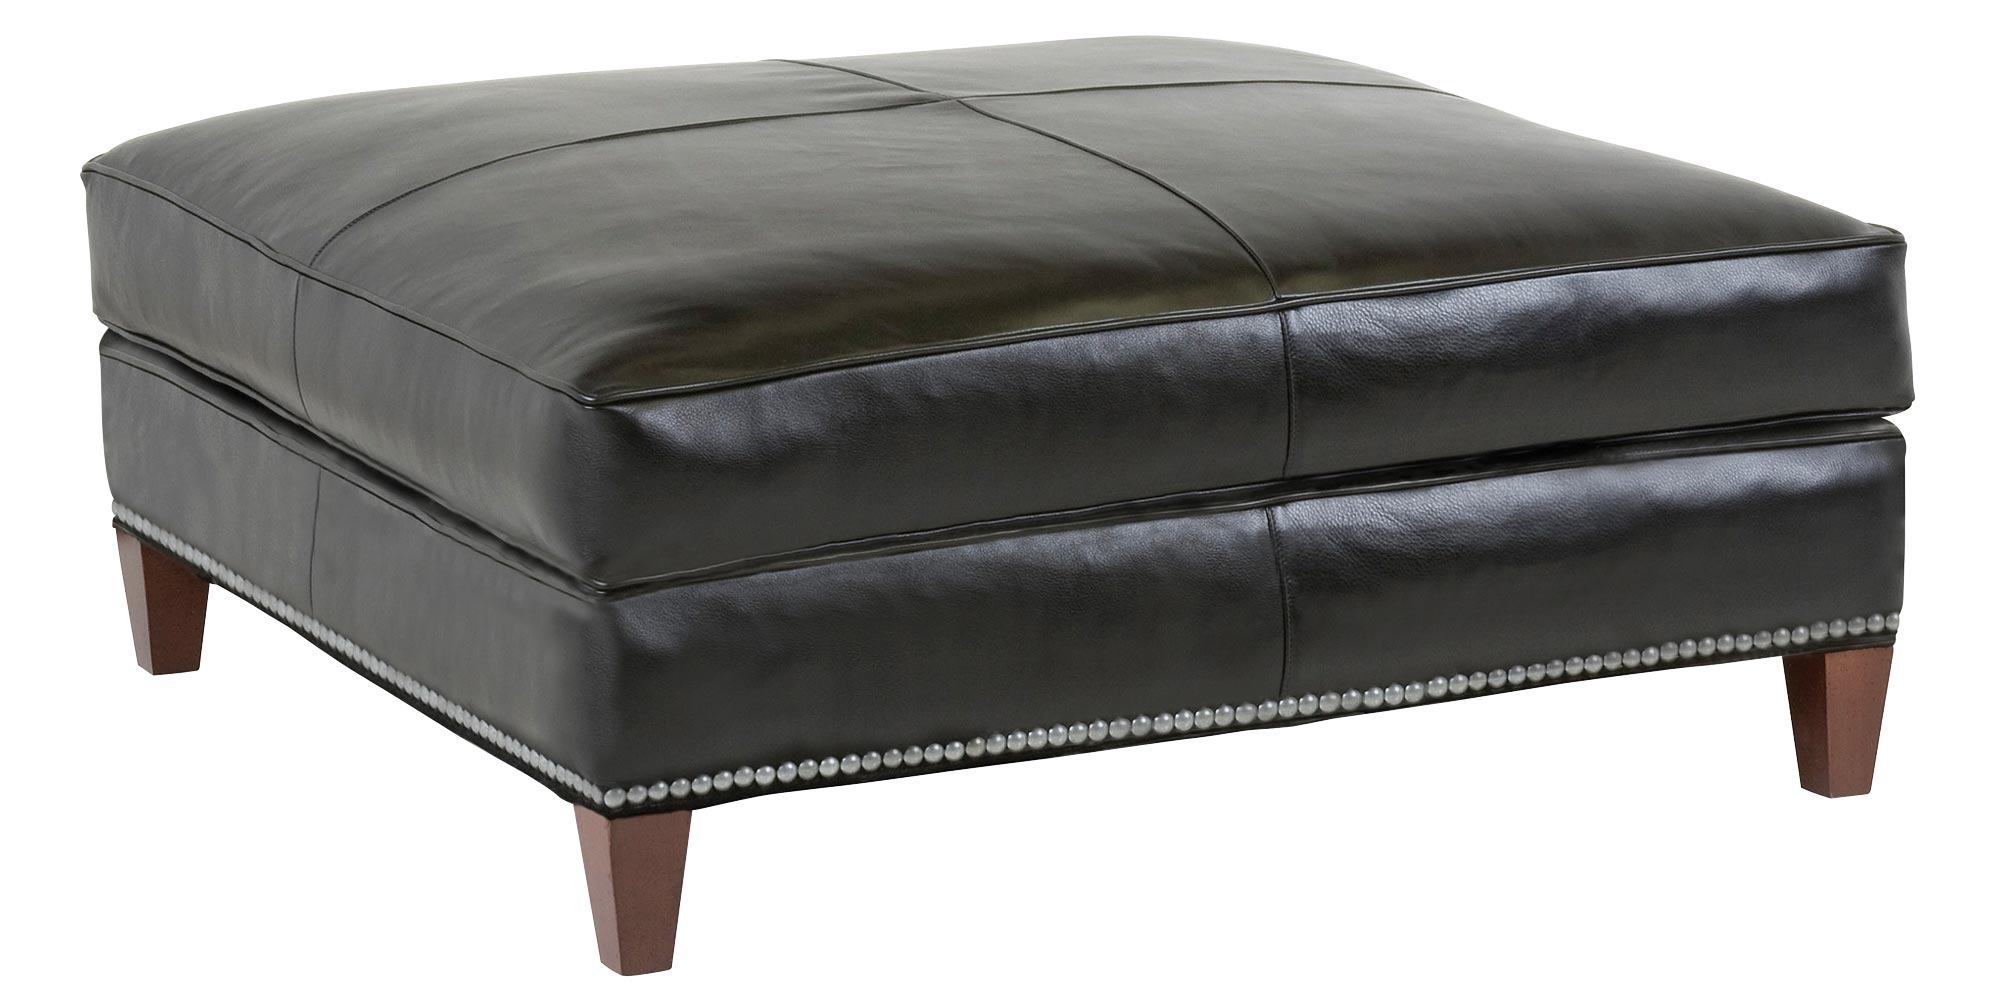 Ottoman Large Black Leather Square Cocktail Ottoman